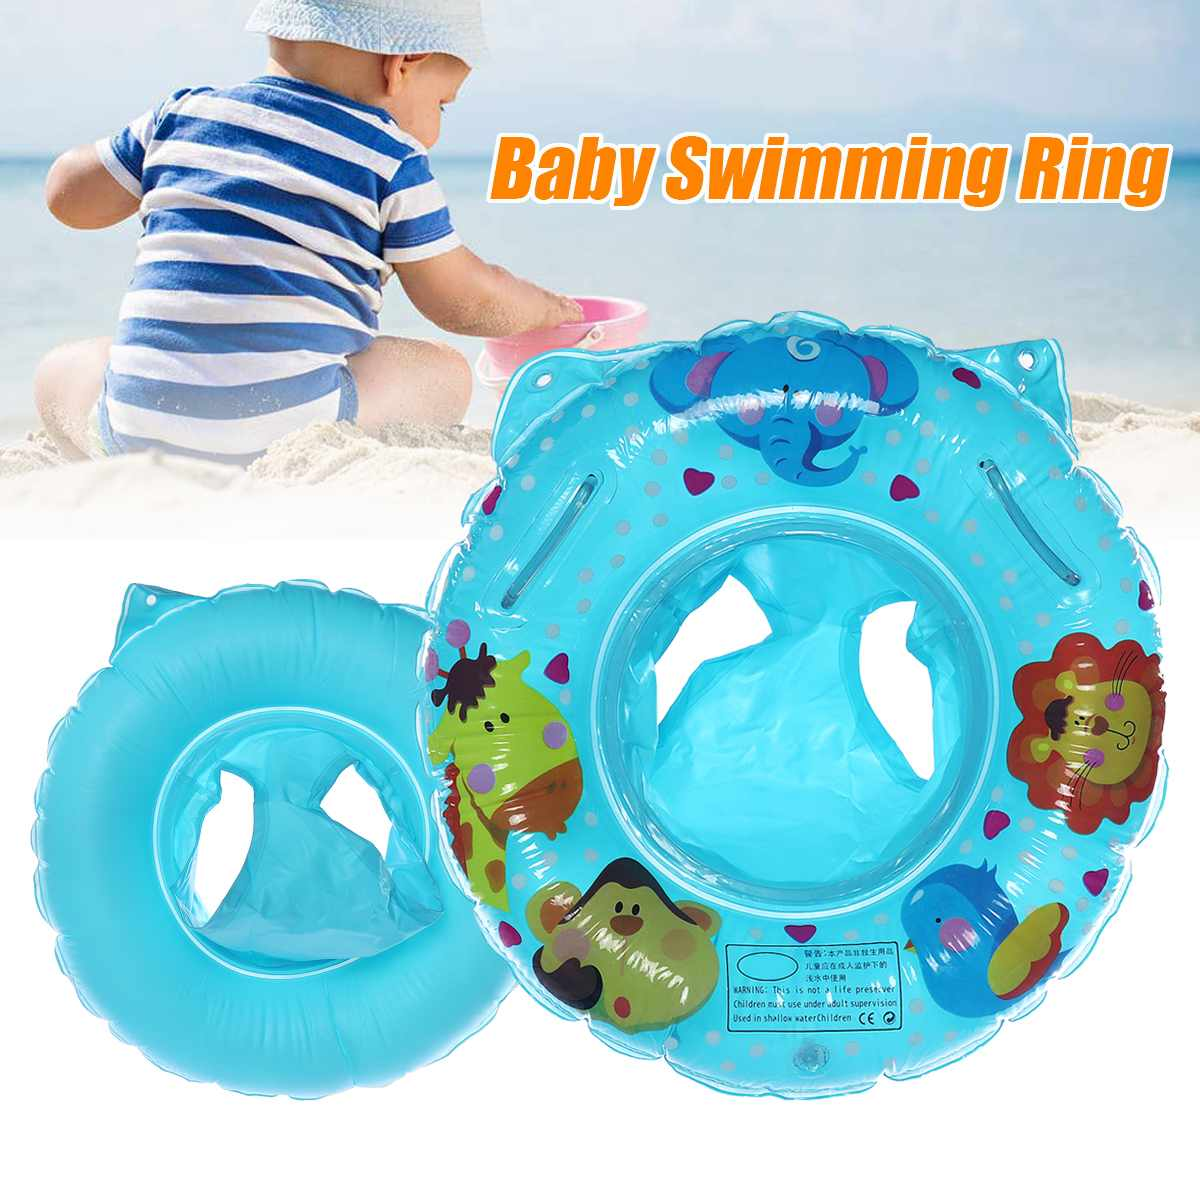 Inflatable PVC Baby Swimming Floating Ring Circle Kids With Cushions Seat Safety Pool Water 6-36 Months